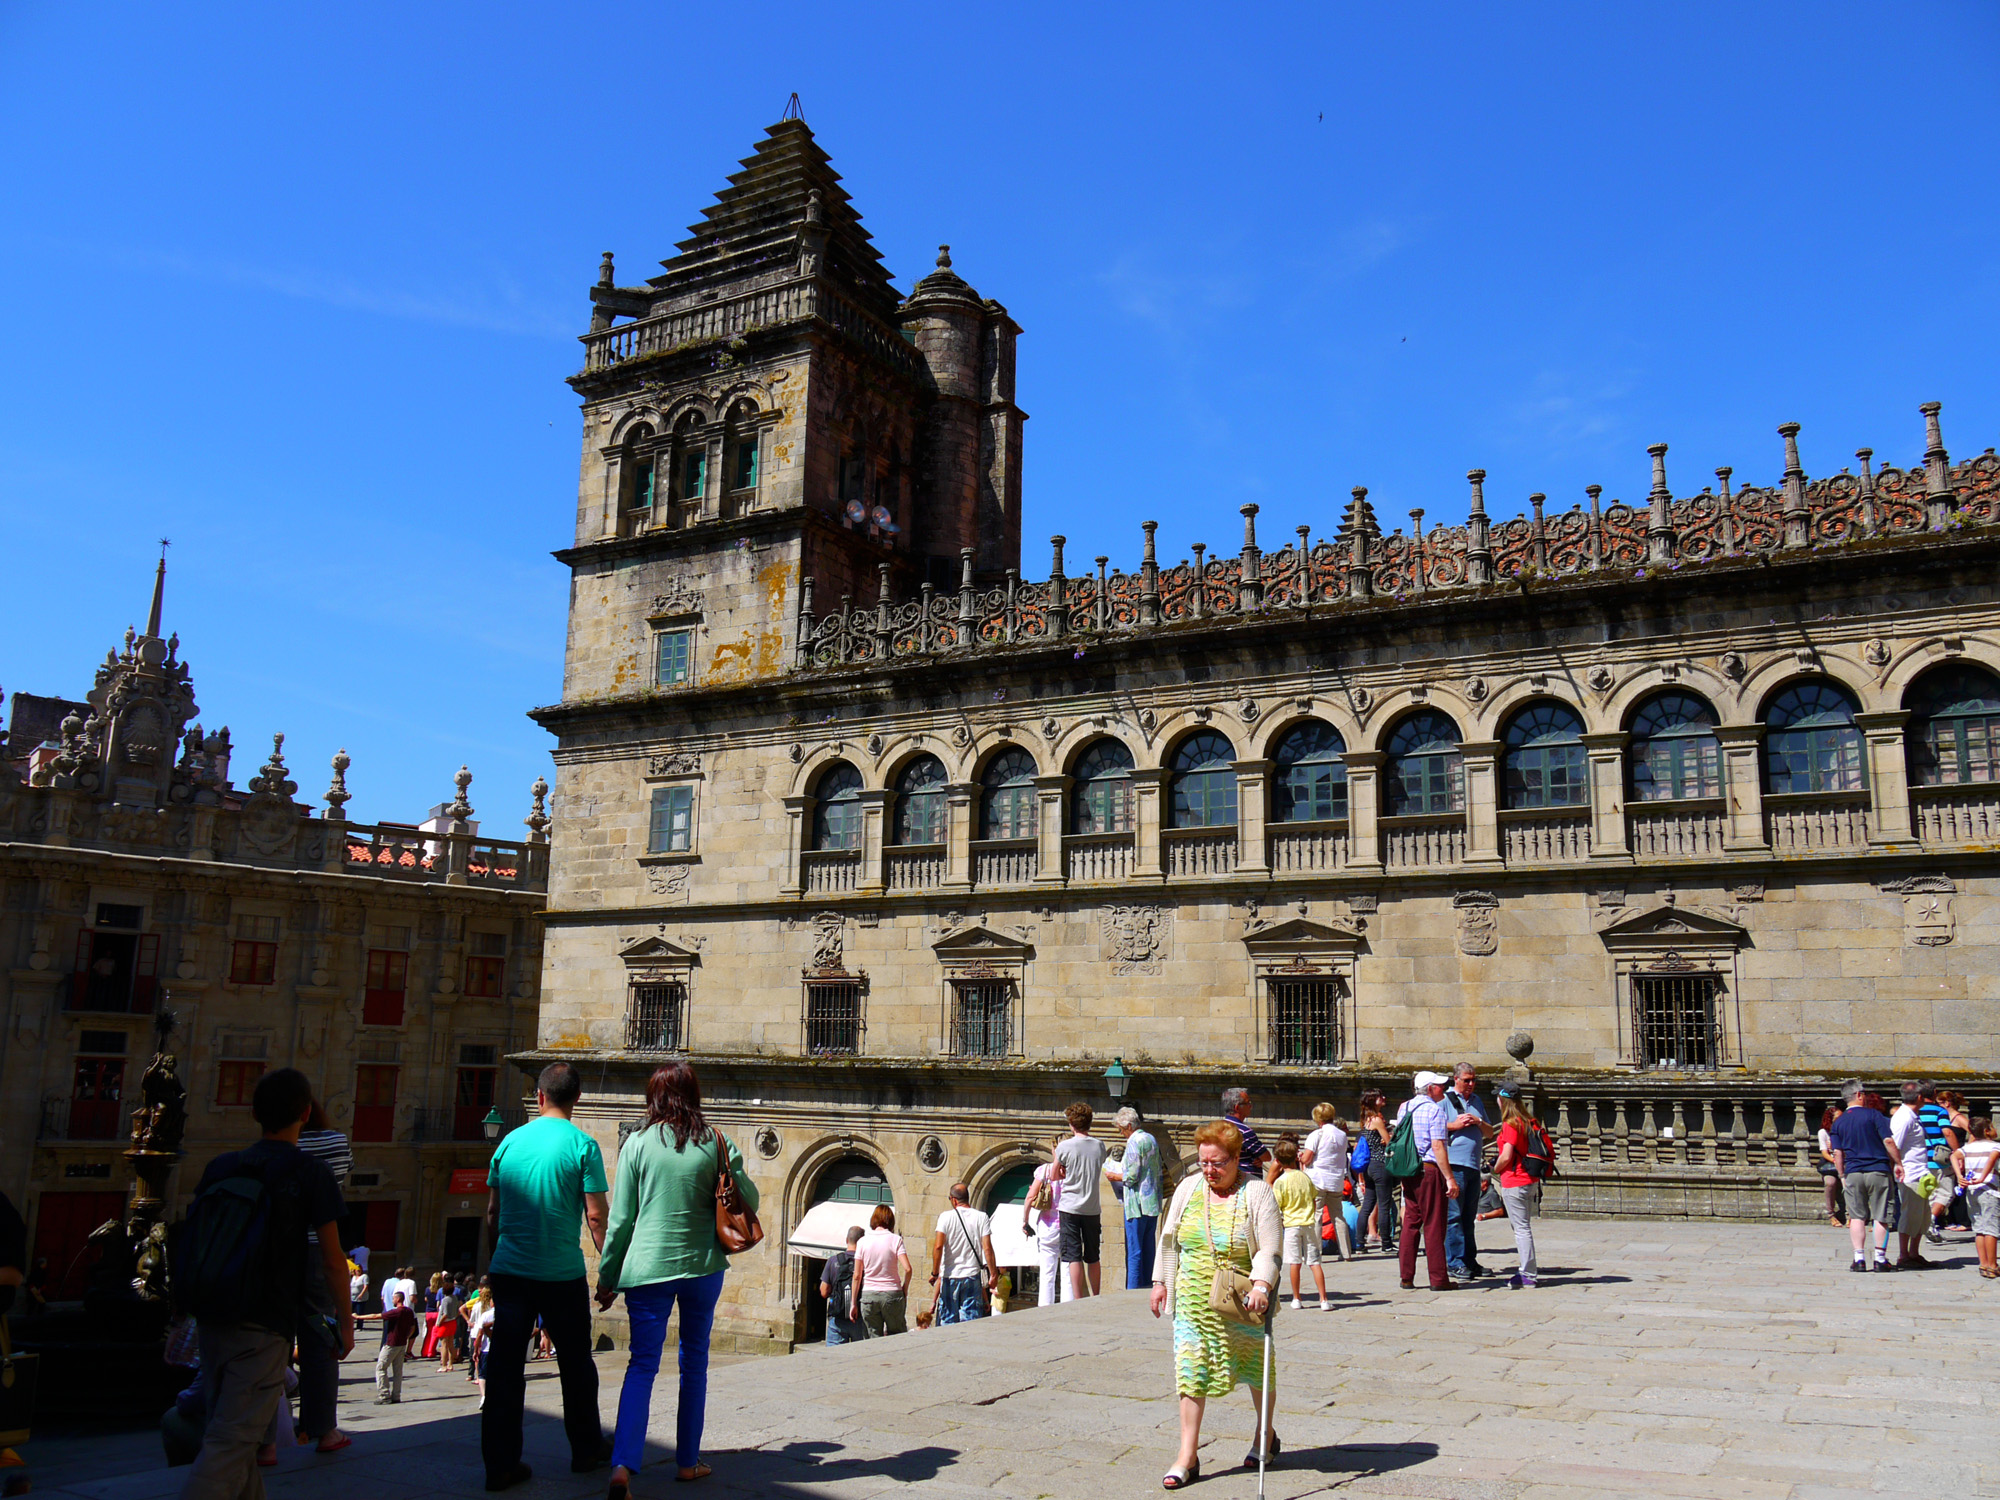 Hitchhikers By Side Of Road >> Santiago de Compostela, Spain | Hitch-Hikers' Handbook